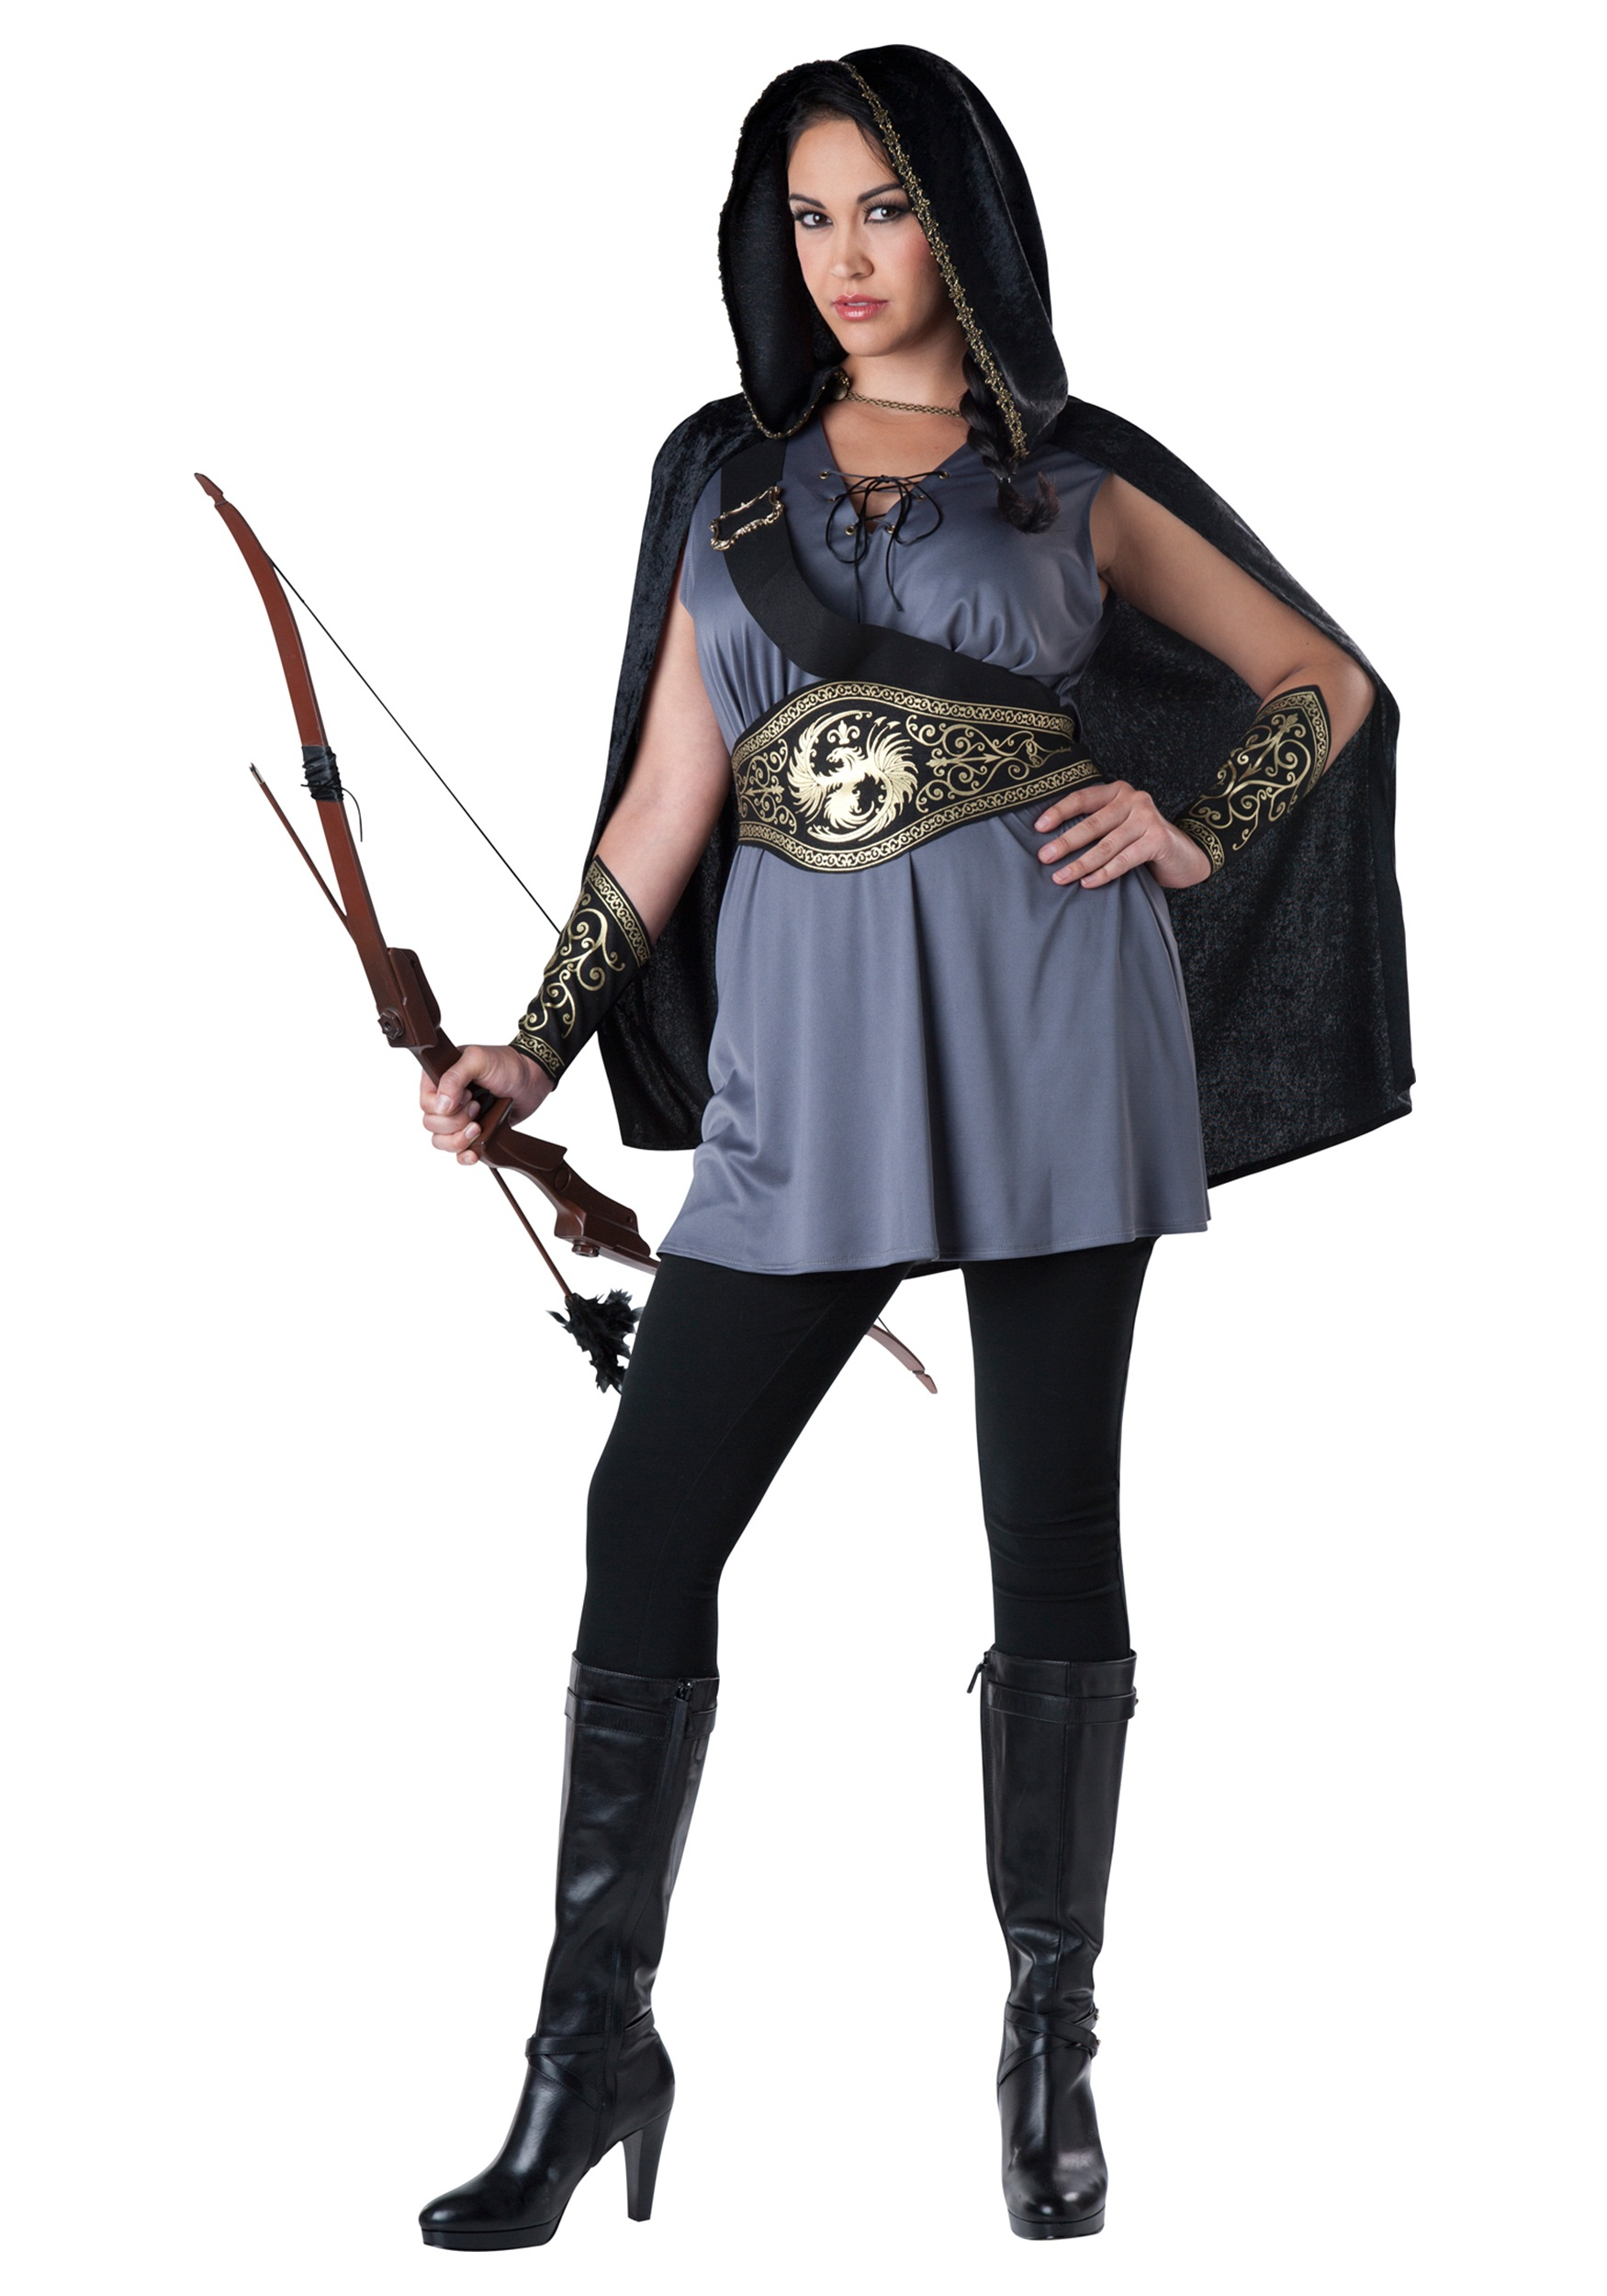 women's plus size huntress costume 2x 3x